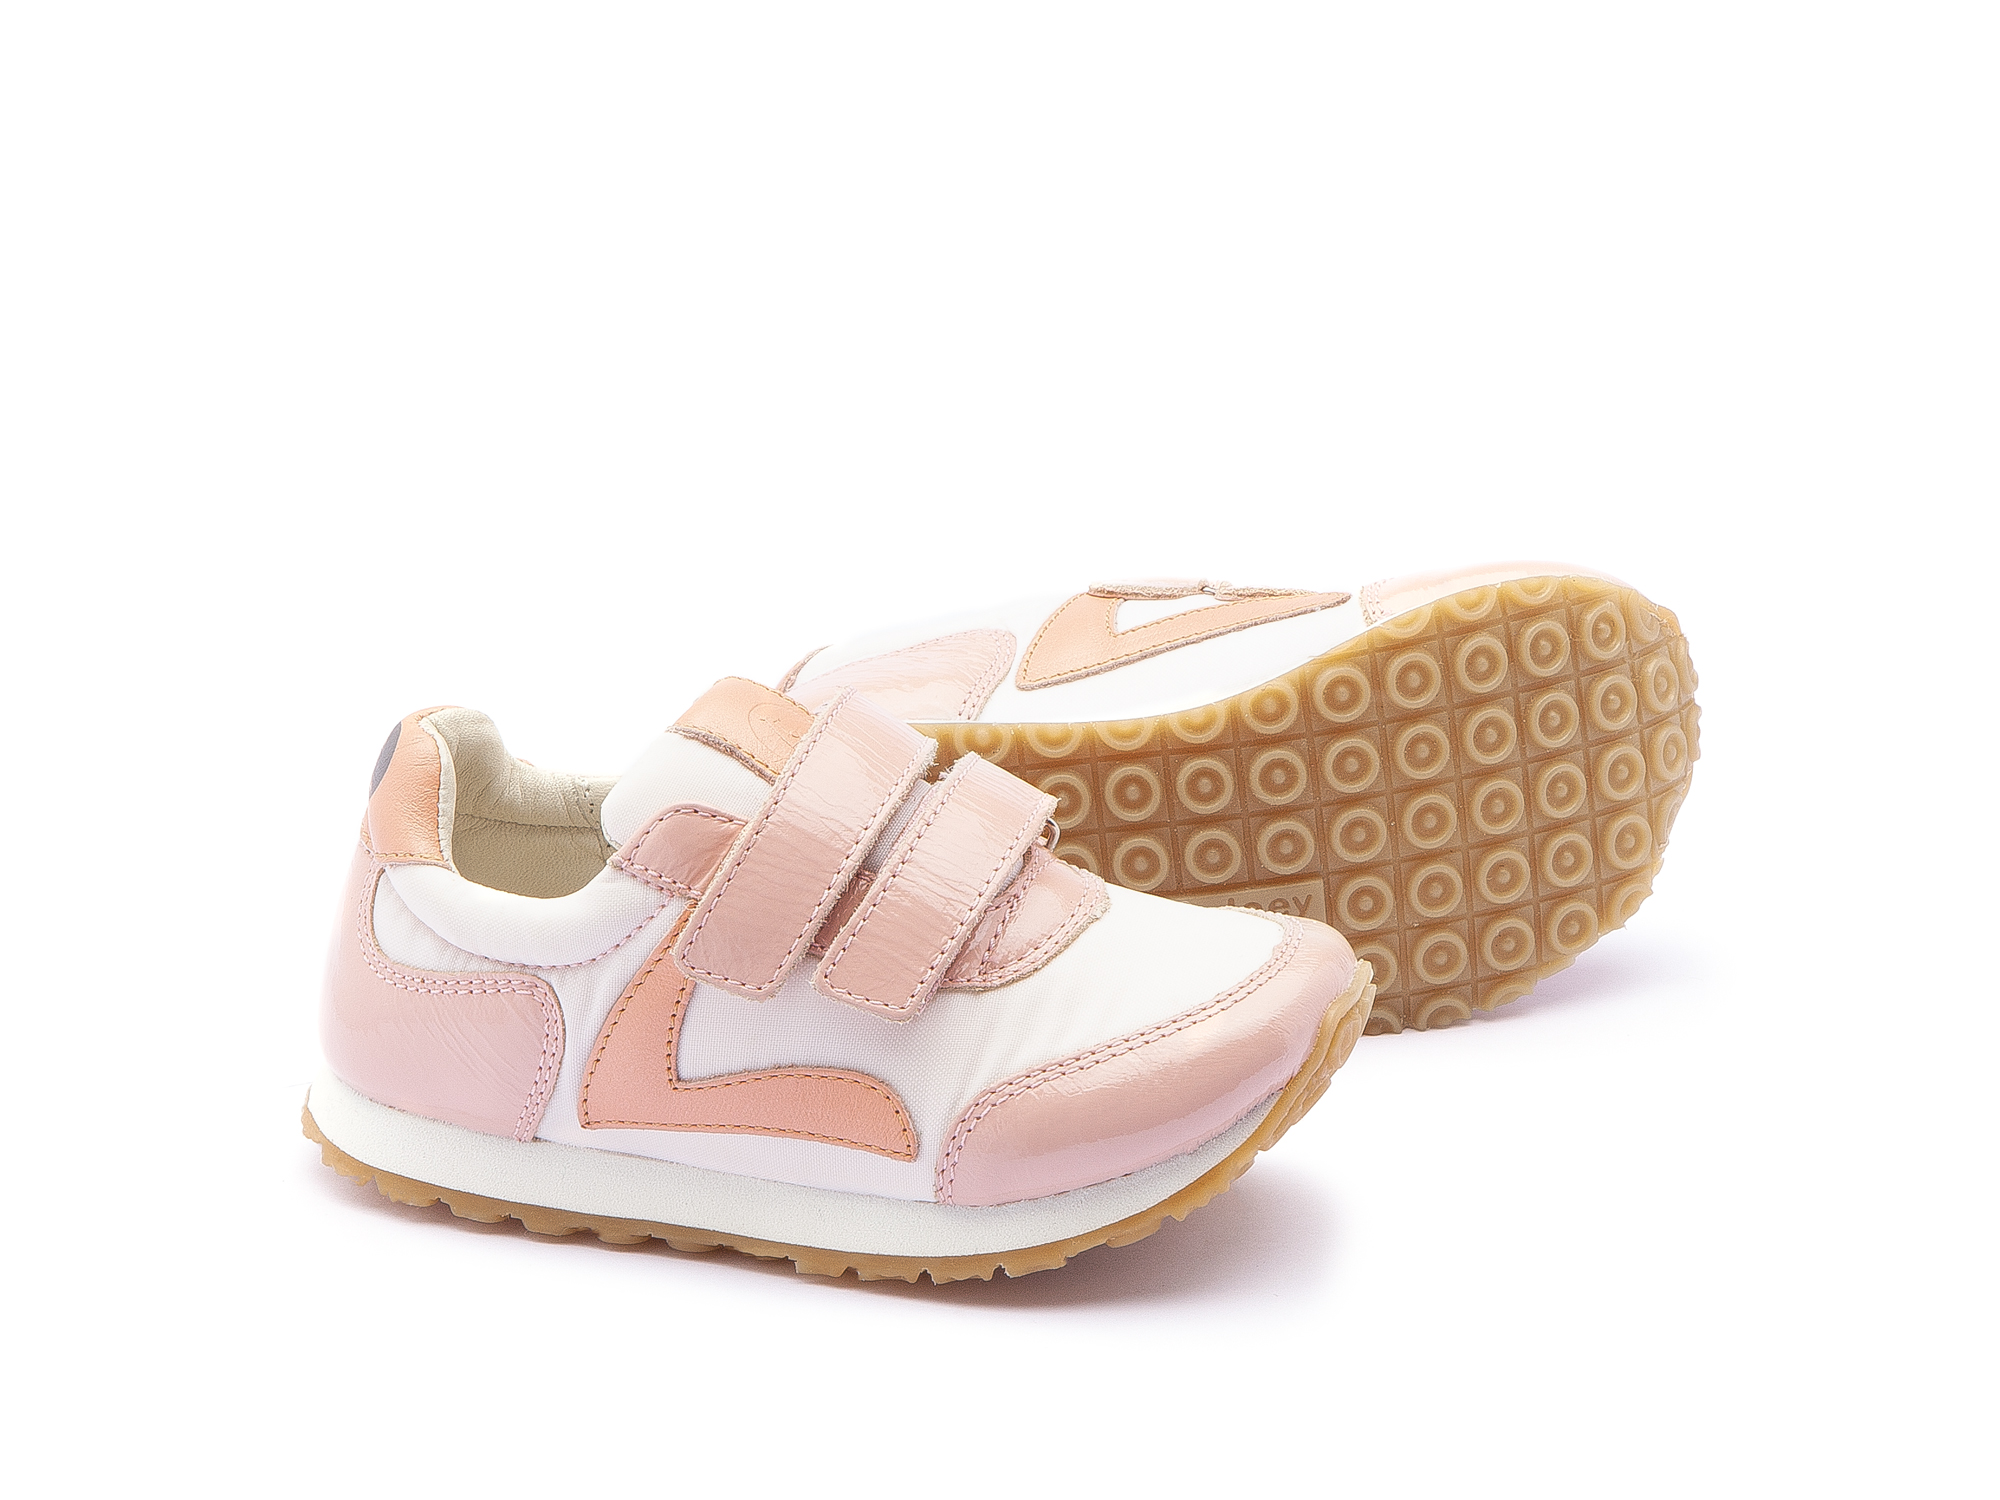 Tênis Little Jump Light Pink Nylon/ Patent Blush Toddler 2 à 4 anos - 2